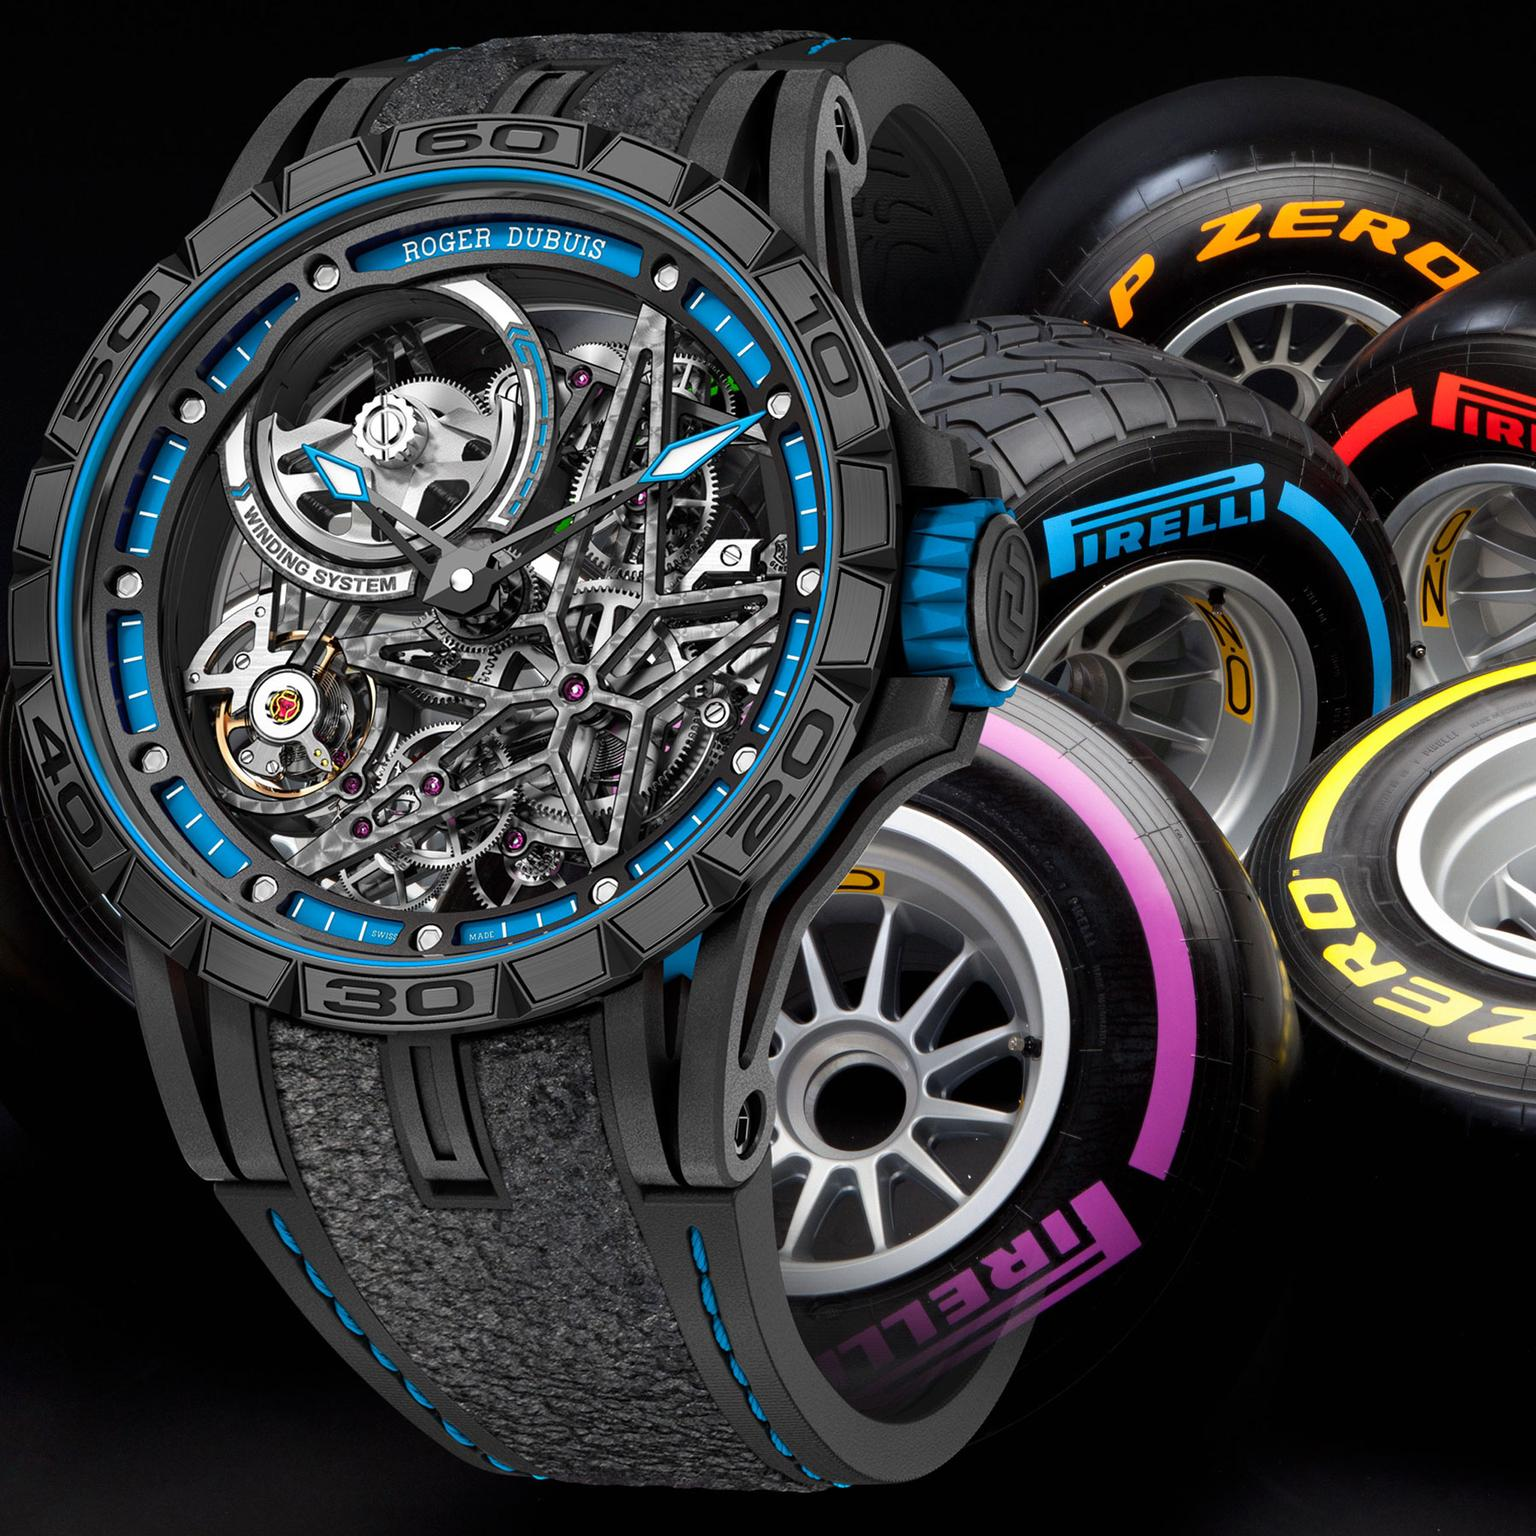 Roger Dubuis teams up with Pirelli for Excalibur Spider models